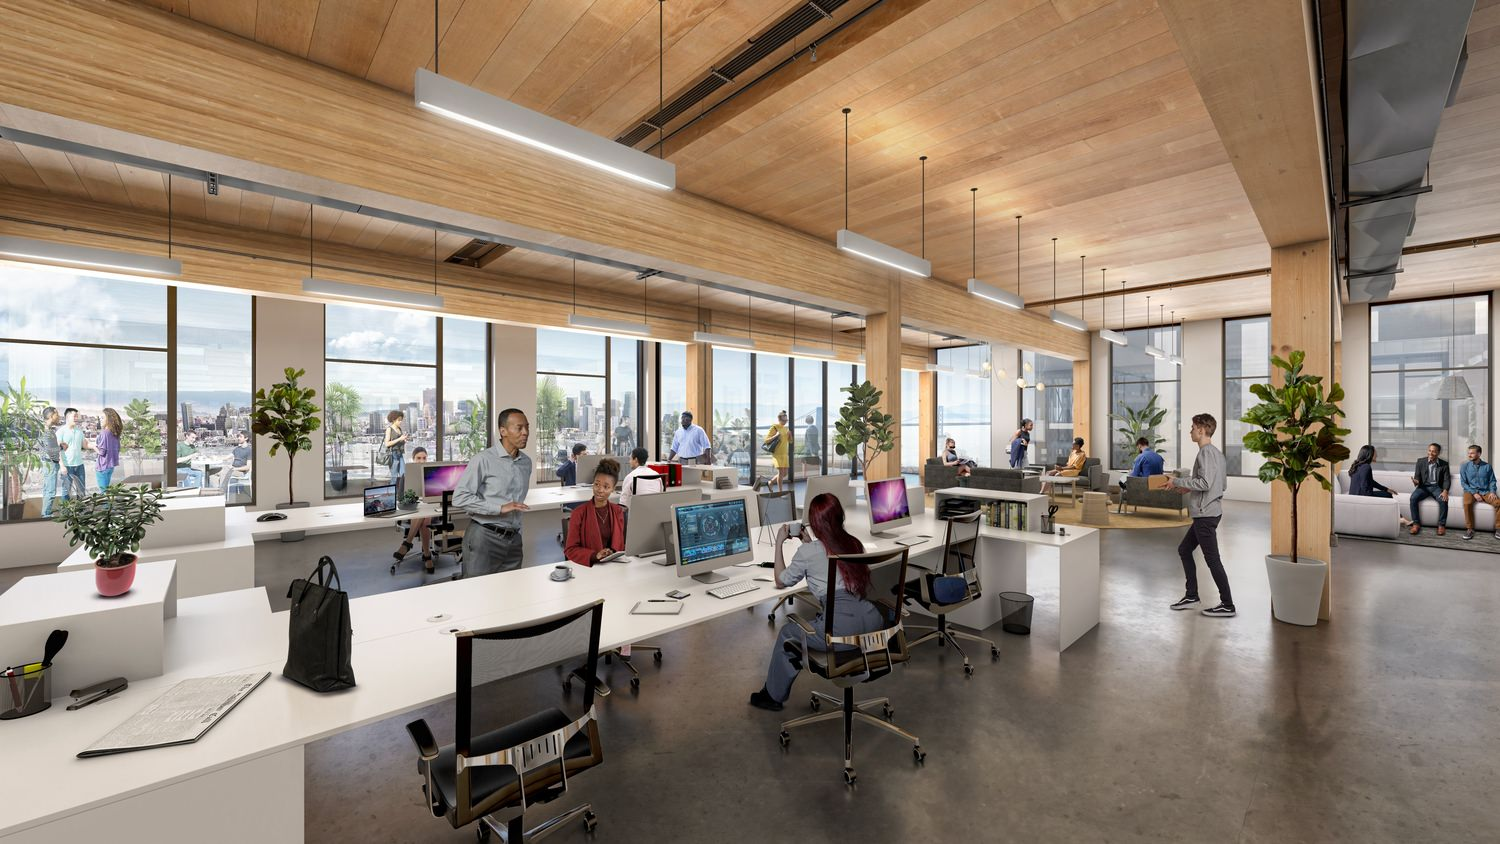 An open-concept office space with people working at shared desks.